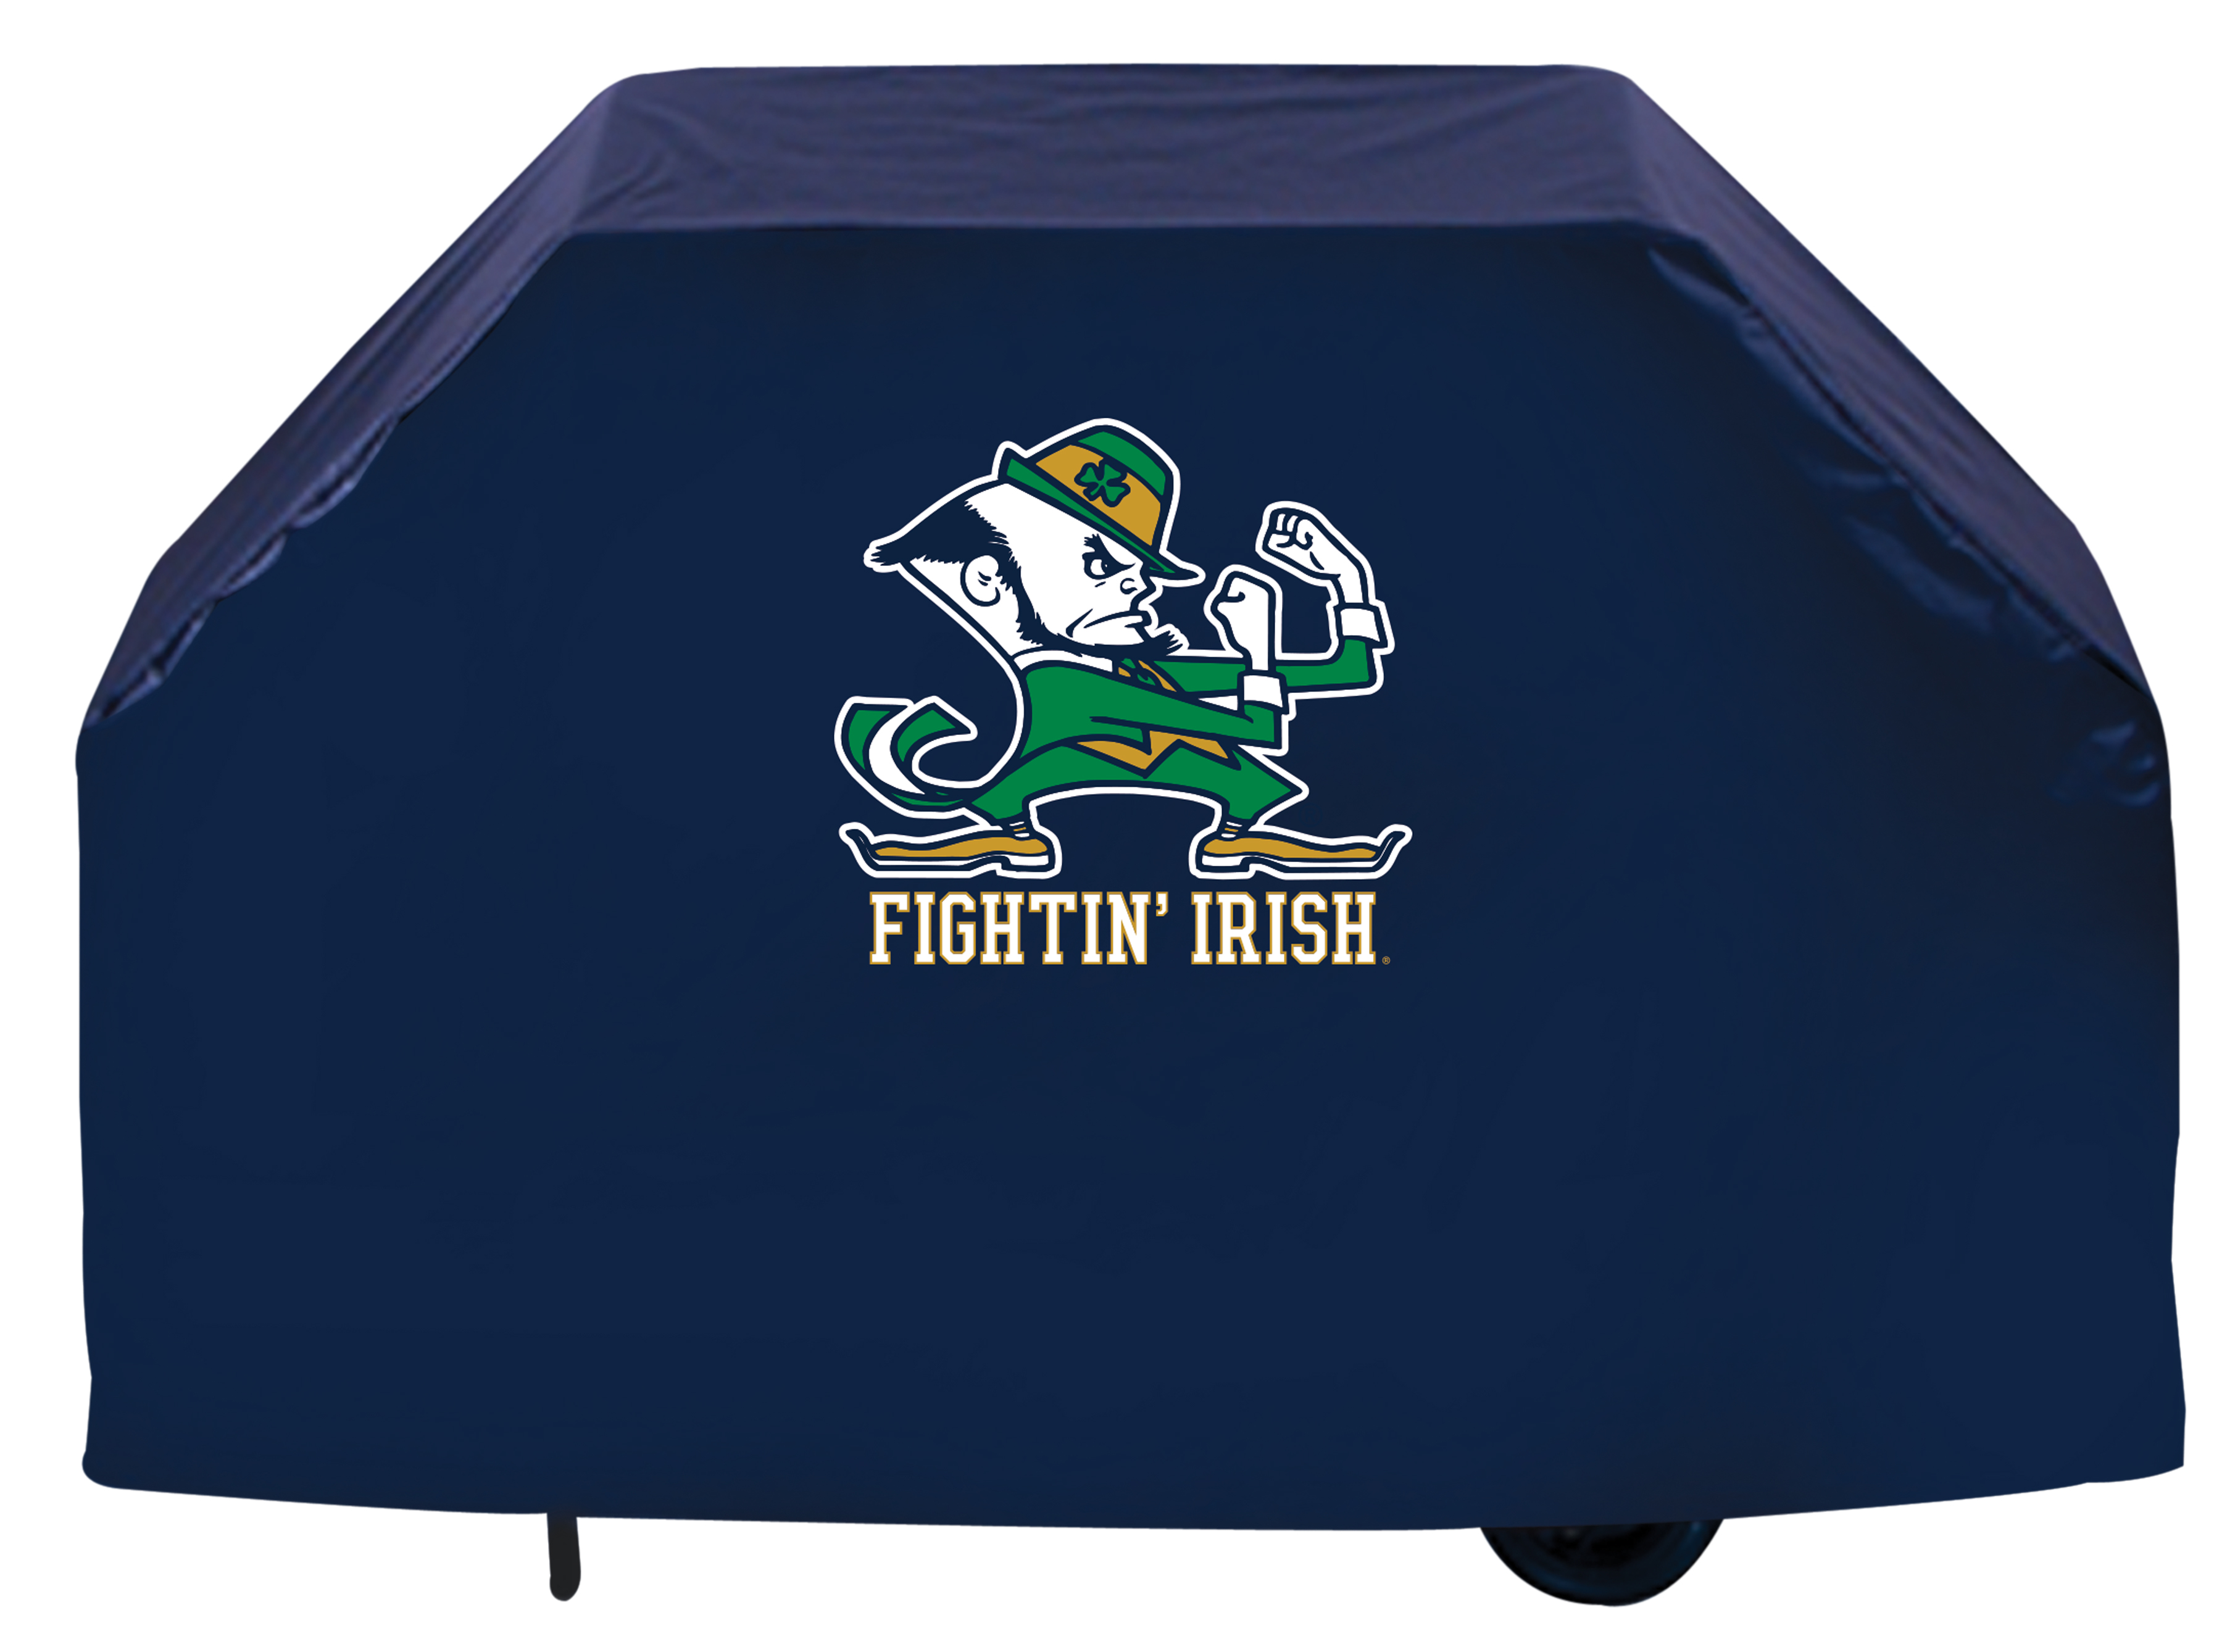 60 Quot Notre Dame Leprechaun Grill Cover By Covers Zerbee